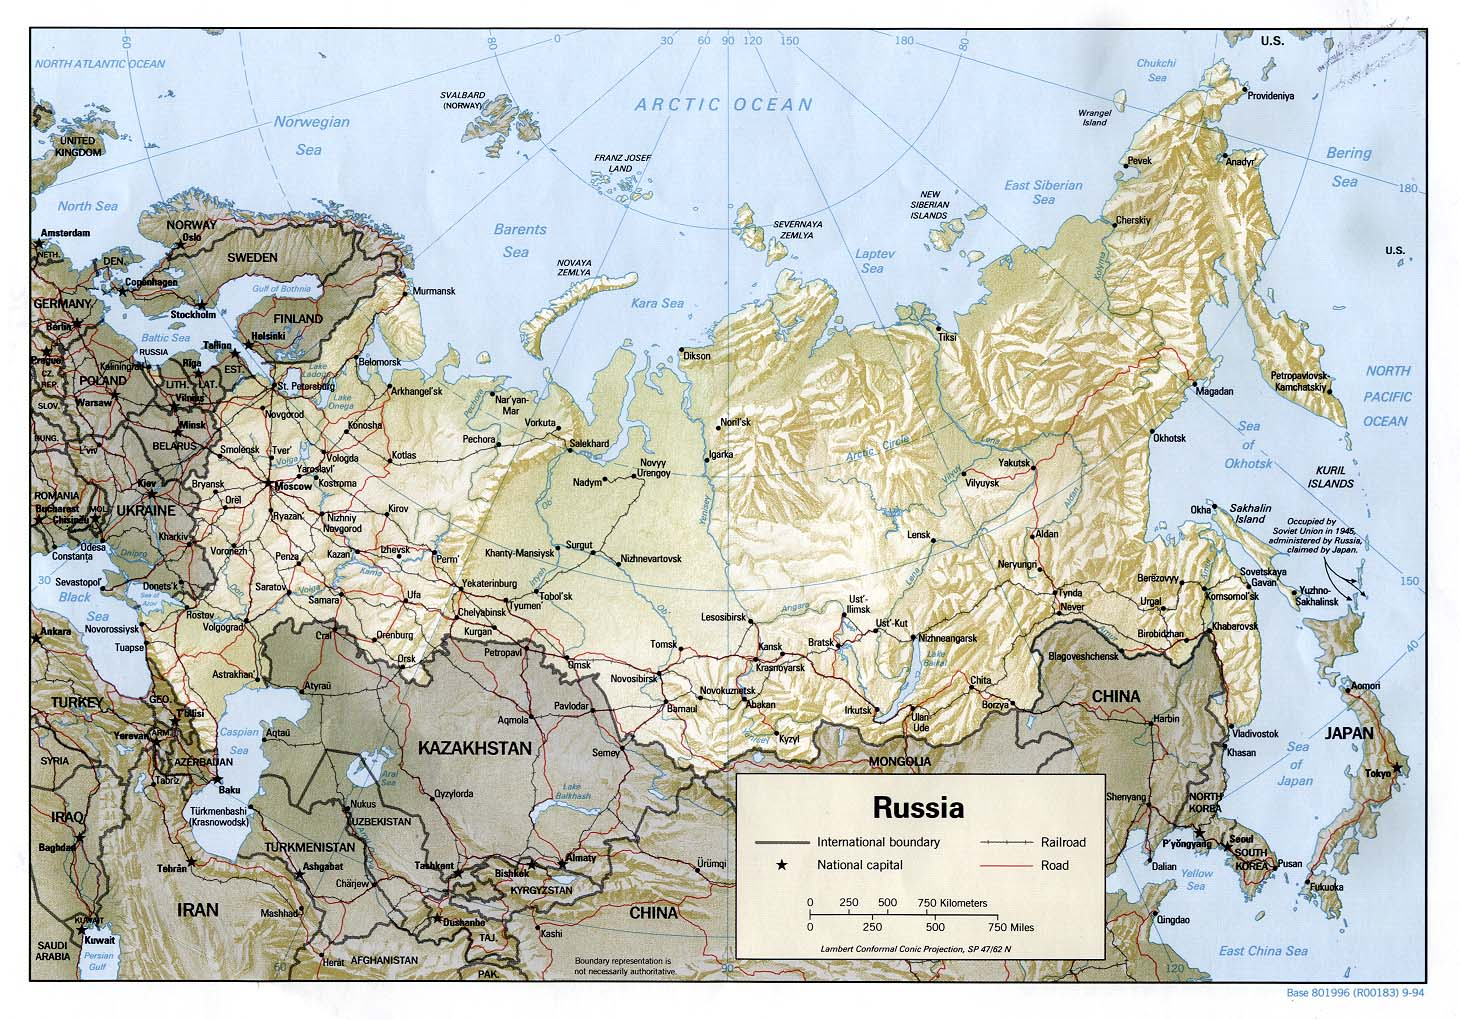 Maps Of Russia Detailed Map Of Russia With Cities And Regions Map Of Russia By Region Map Of Russia Road Map Of Russia Political Administrative Physical Maps Of Russia